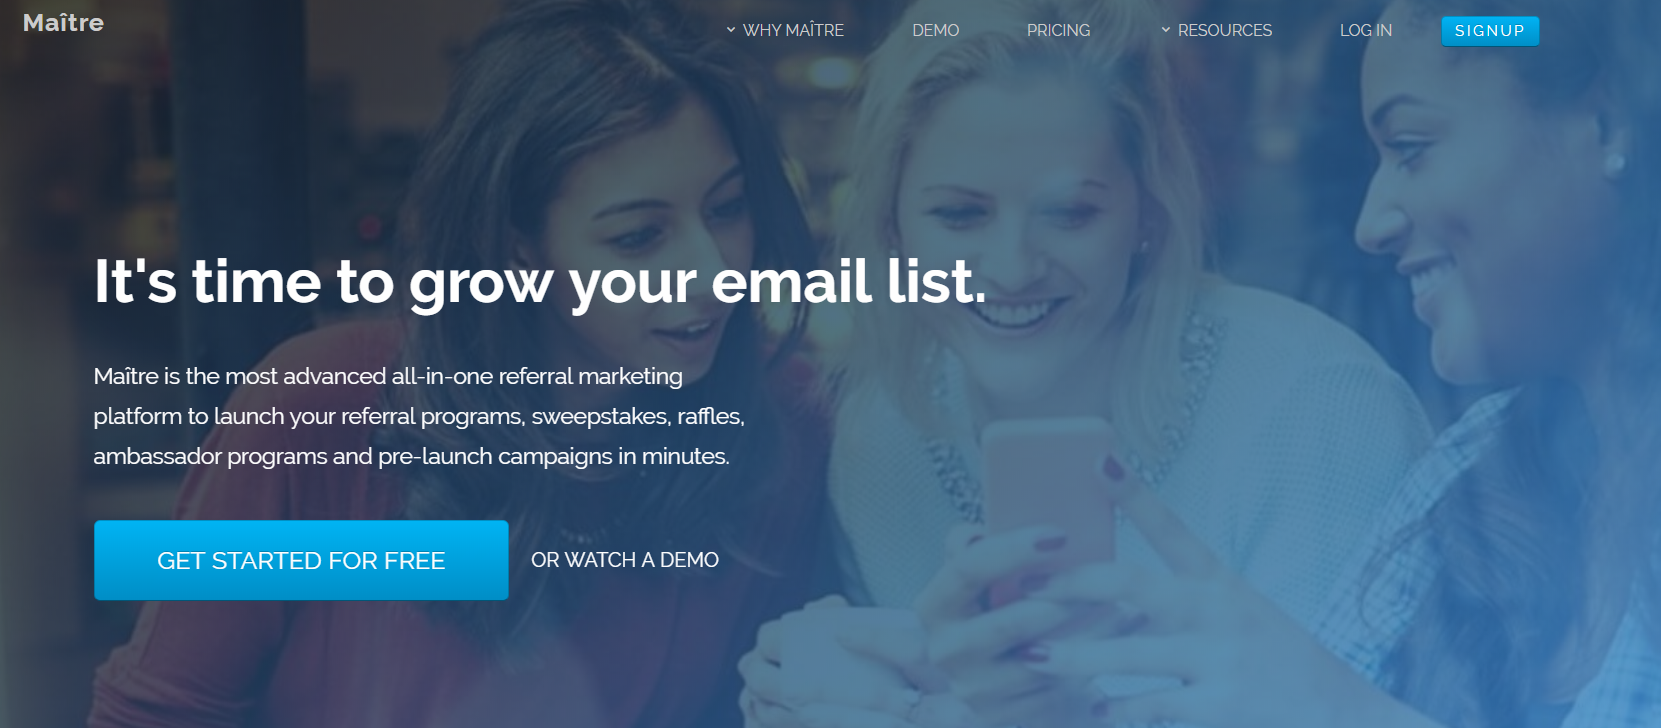 Maitre is a lead generation and on-site retargeting tool to help marketers grow their email lists and consumer base.